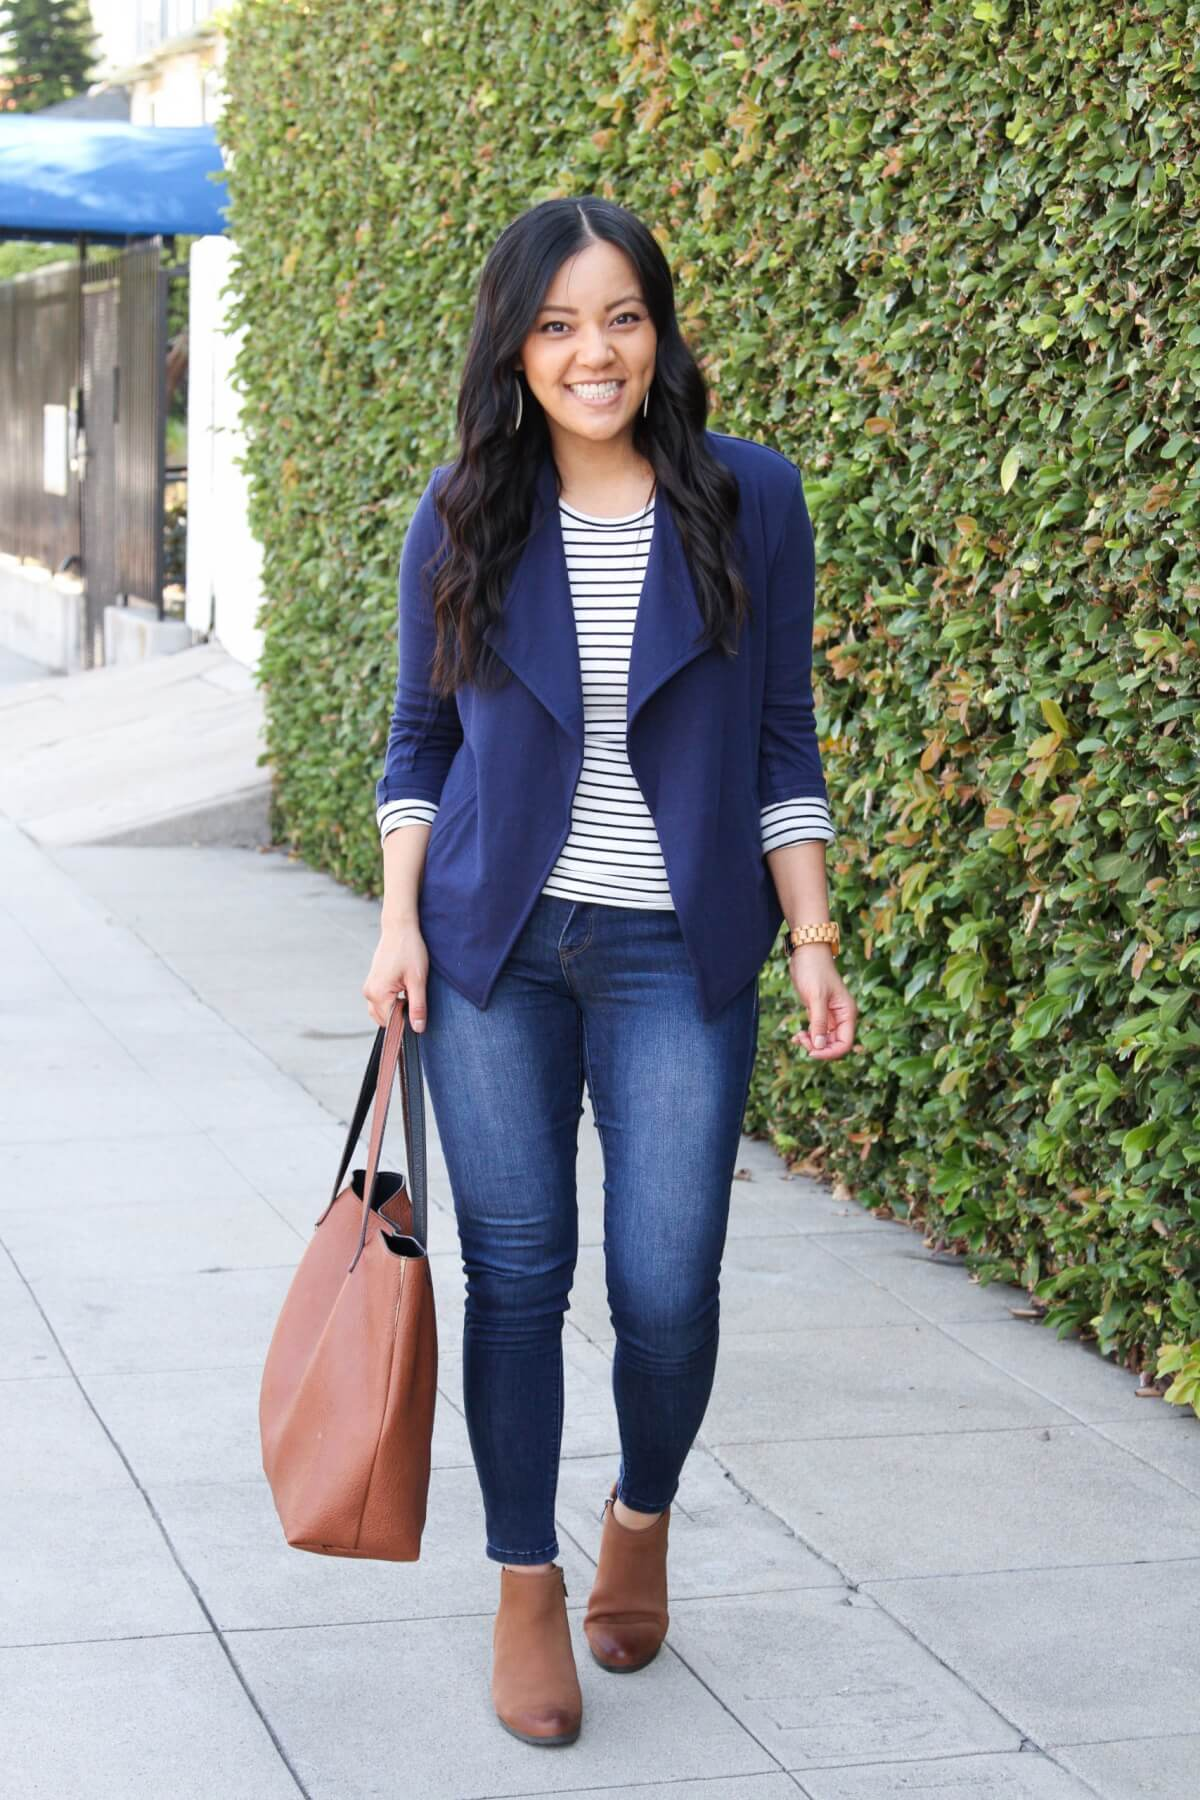 Business Casual Fall Outfit: long-sleeve striped tee + navy knit blazer + skinny jeans + cognac booties + cognac tote + gold leather earrings